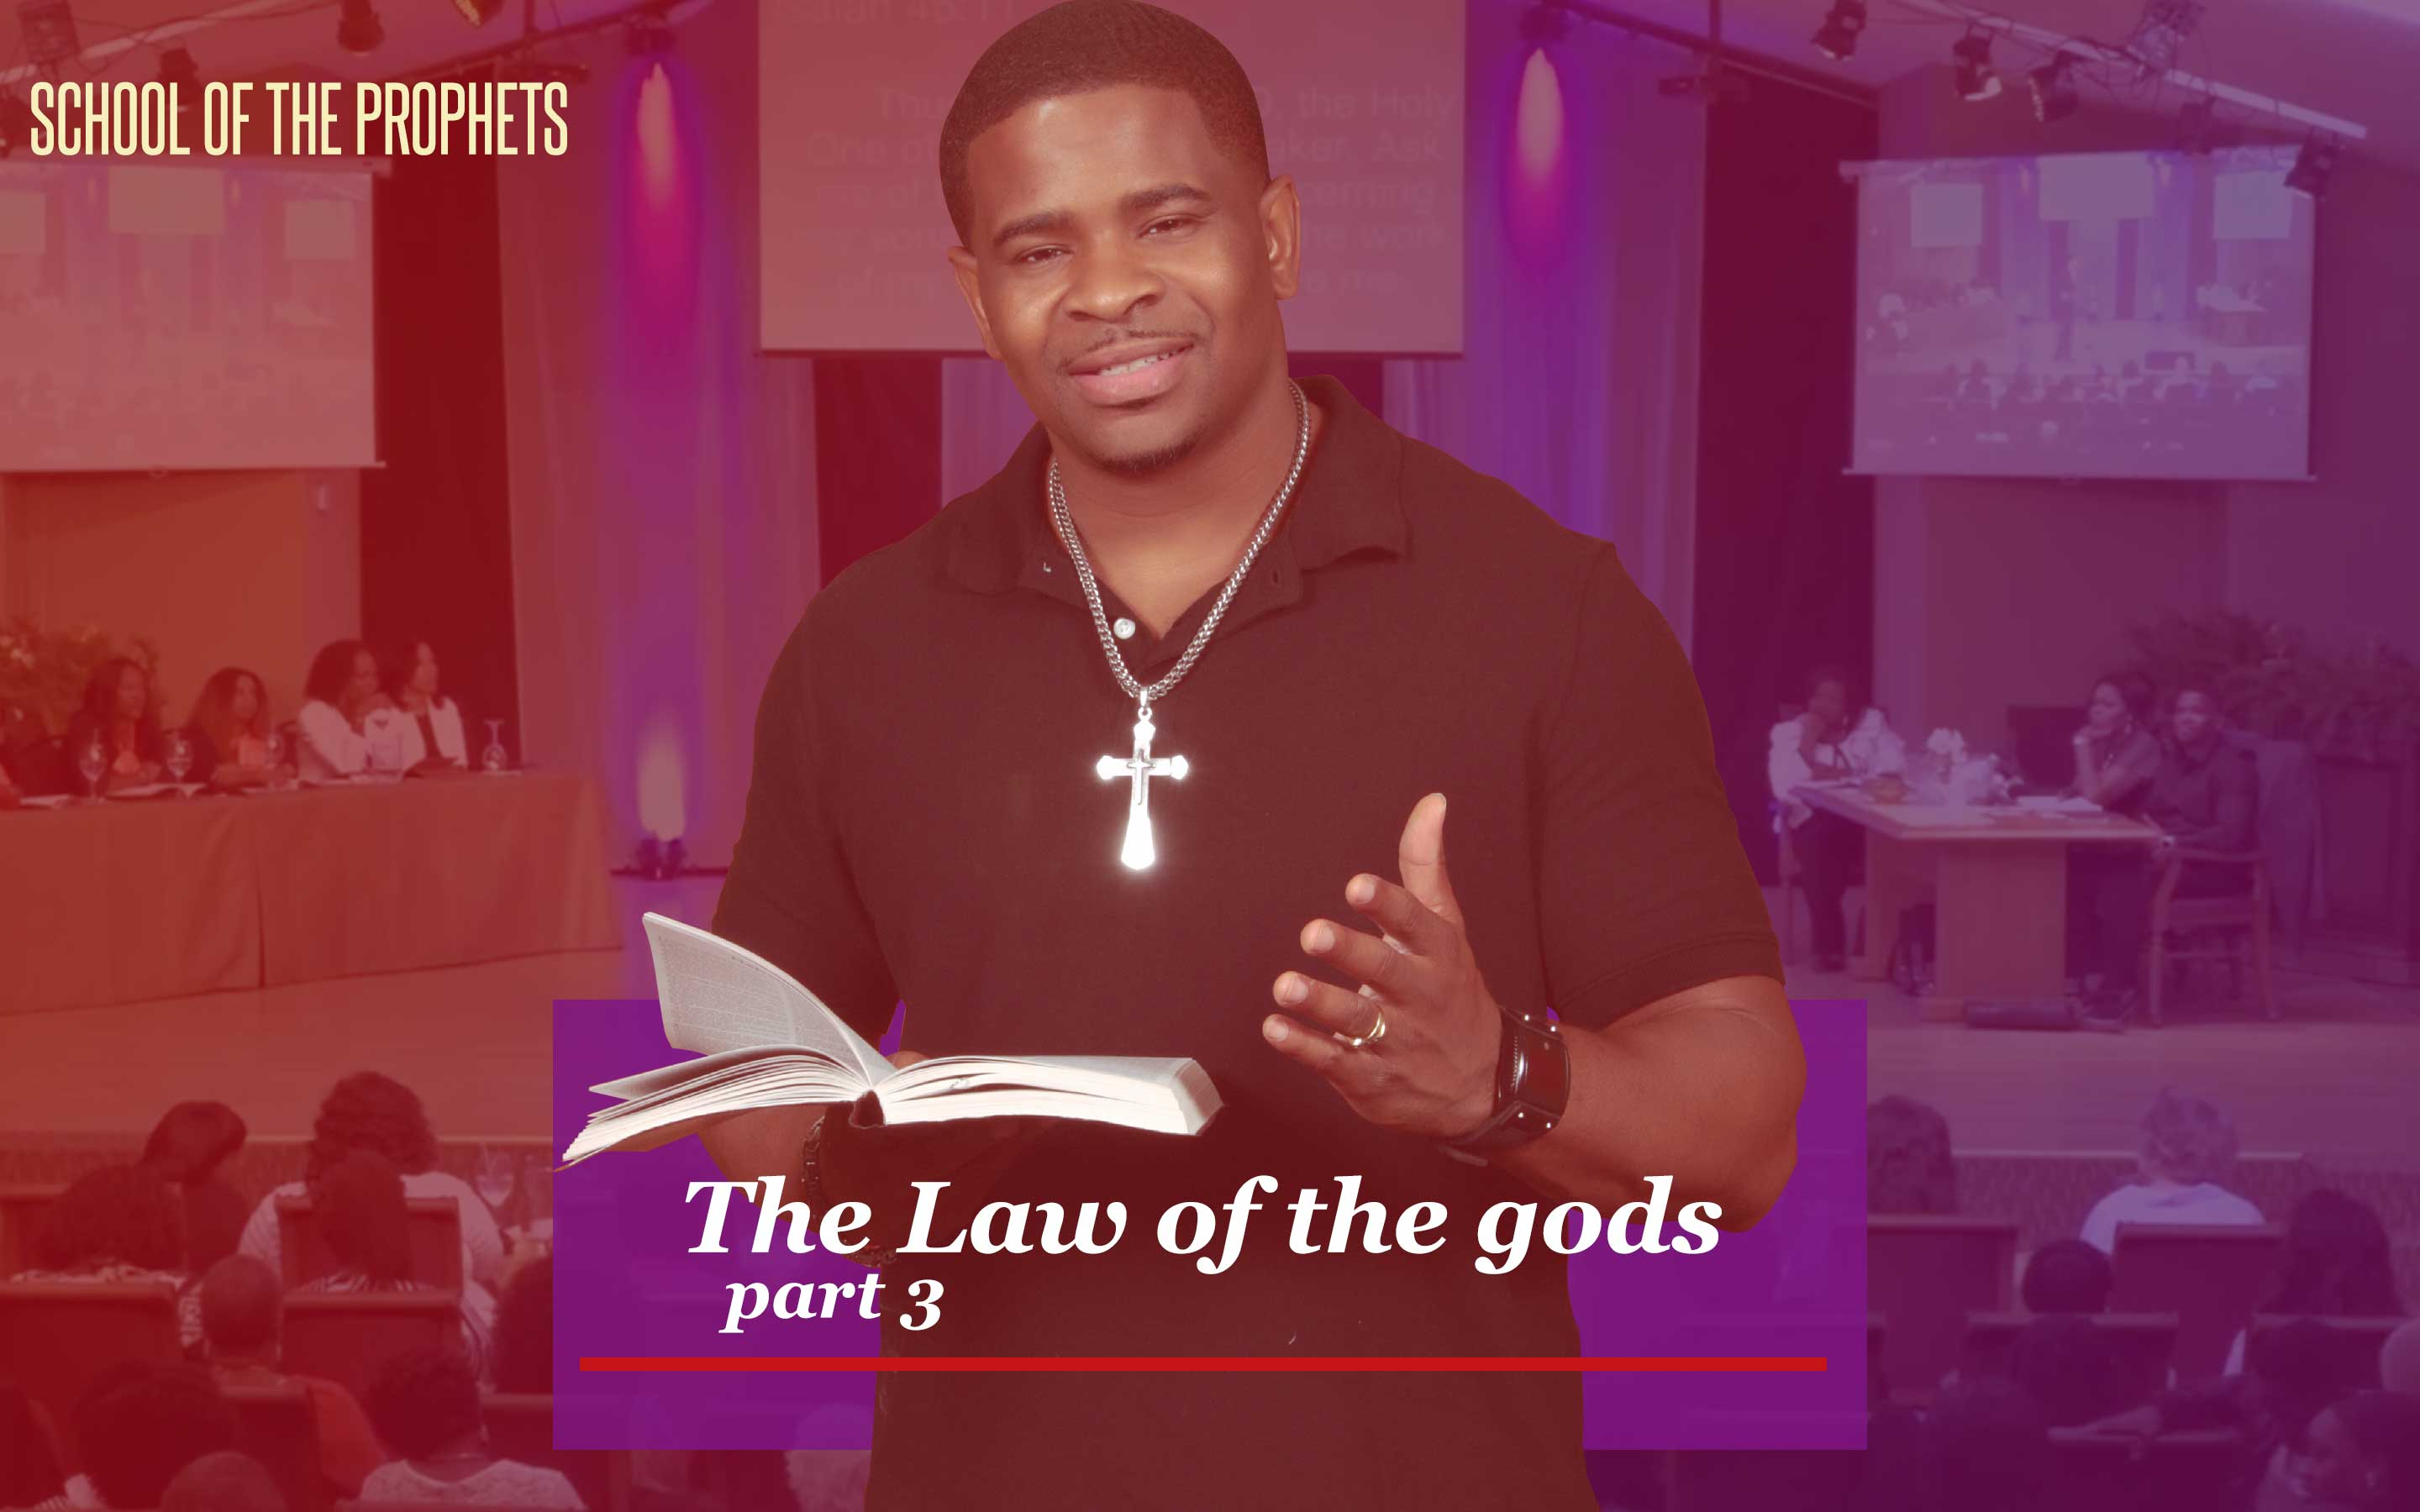 SOP The Law of the gods 3